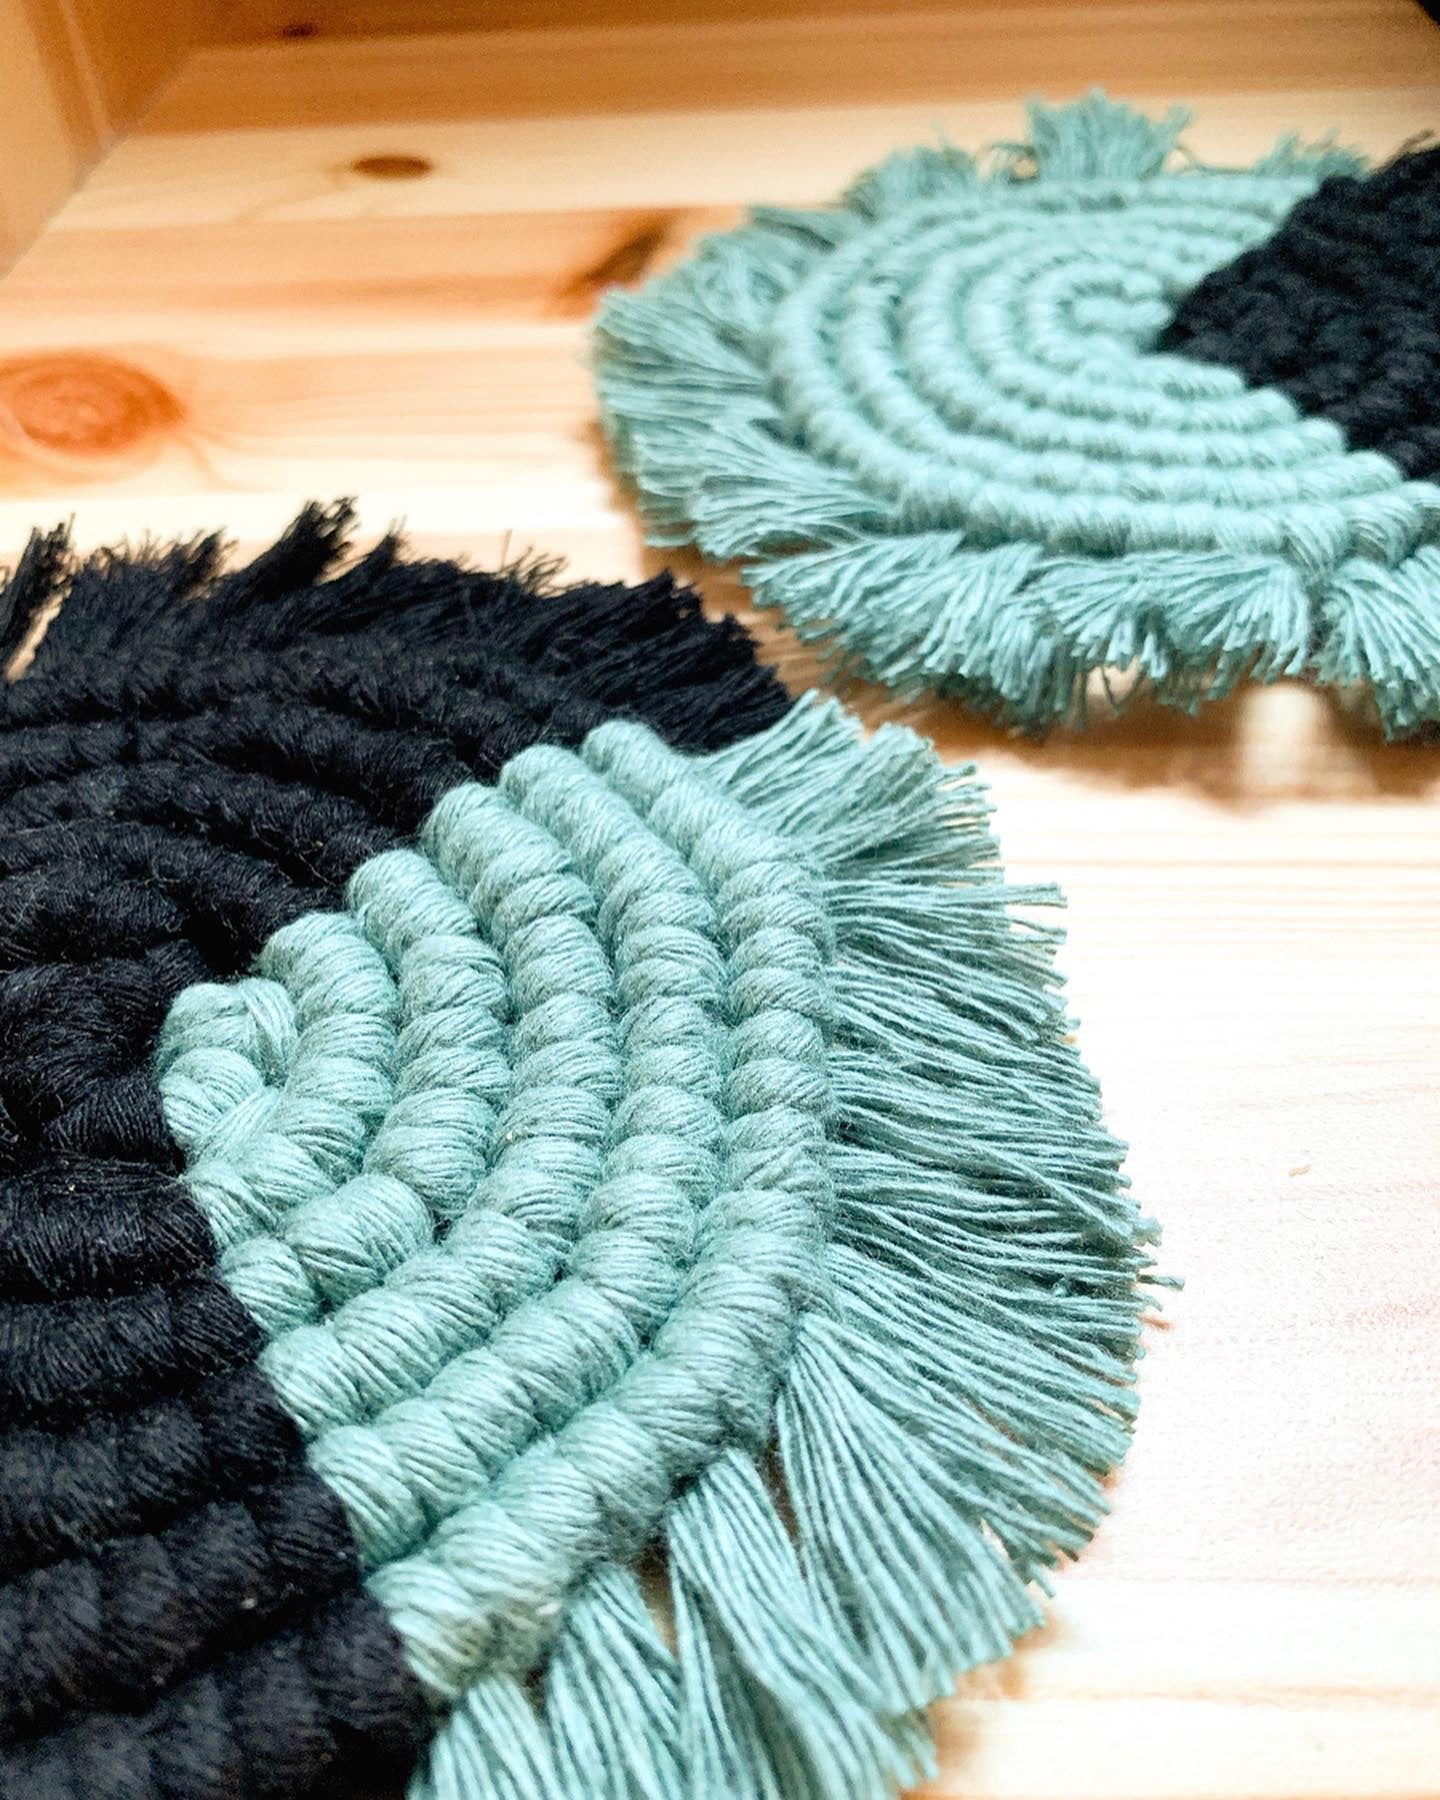 HARMONY | Two-toned Spiral Macramé Coasters, Set of 2